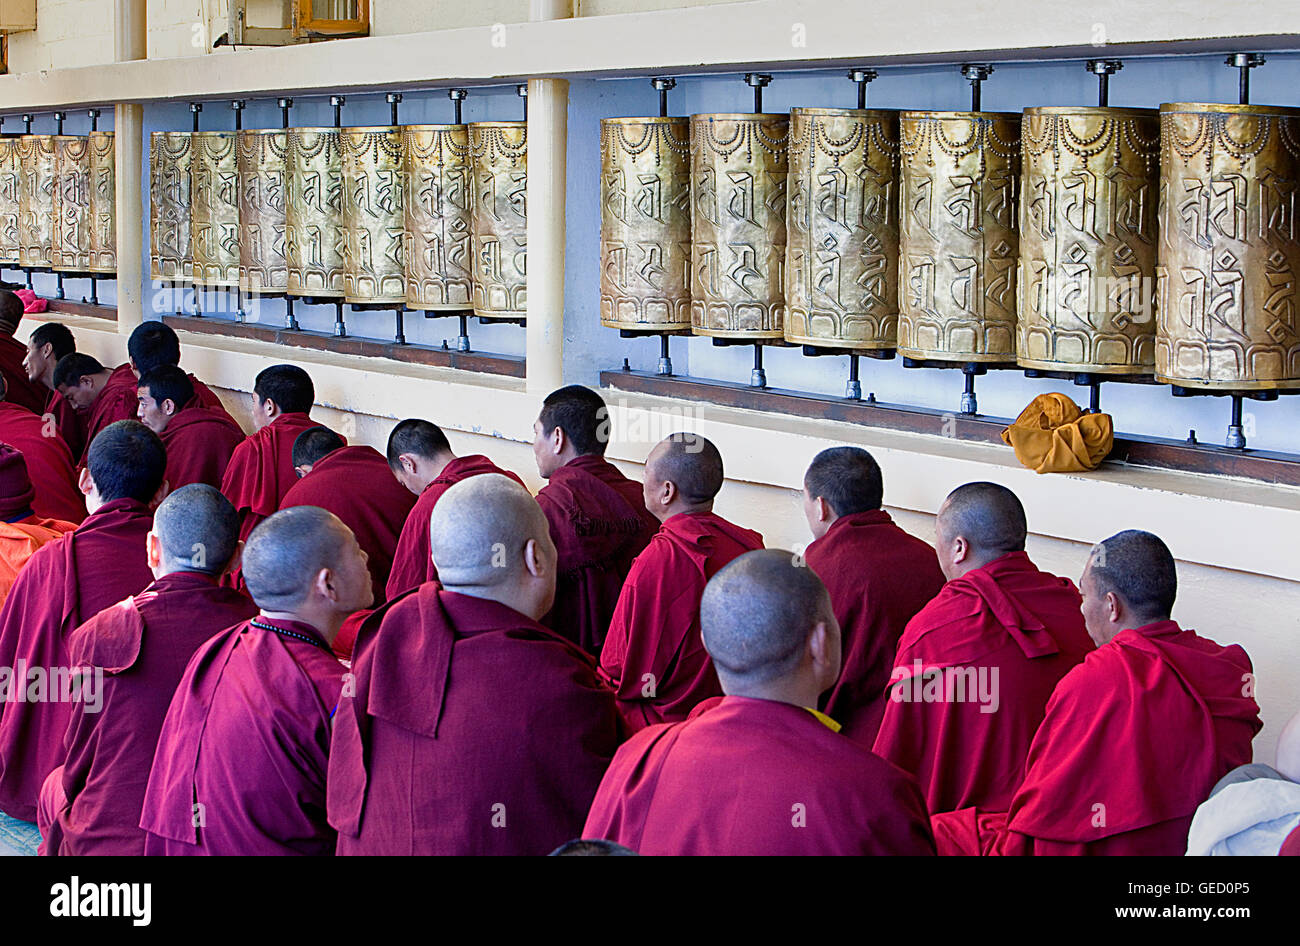 Monks at Namgyal Monastery,in Tsuglagkhang complex. McLeod Ganj, Dharamsala, Himachal Pradesh state, India, Asia - Stock Image